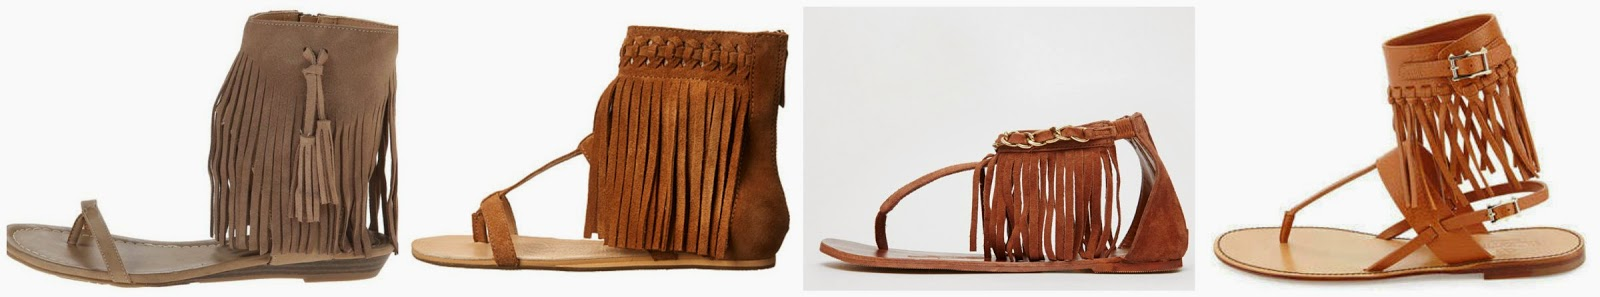 One of these pairs of fringe sandals is from Valentino for $1,075 and the other three are under $135. Can you guess which ones are the designer shoes? Click the links below to see if you are correct!